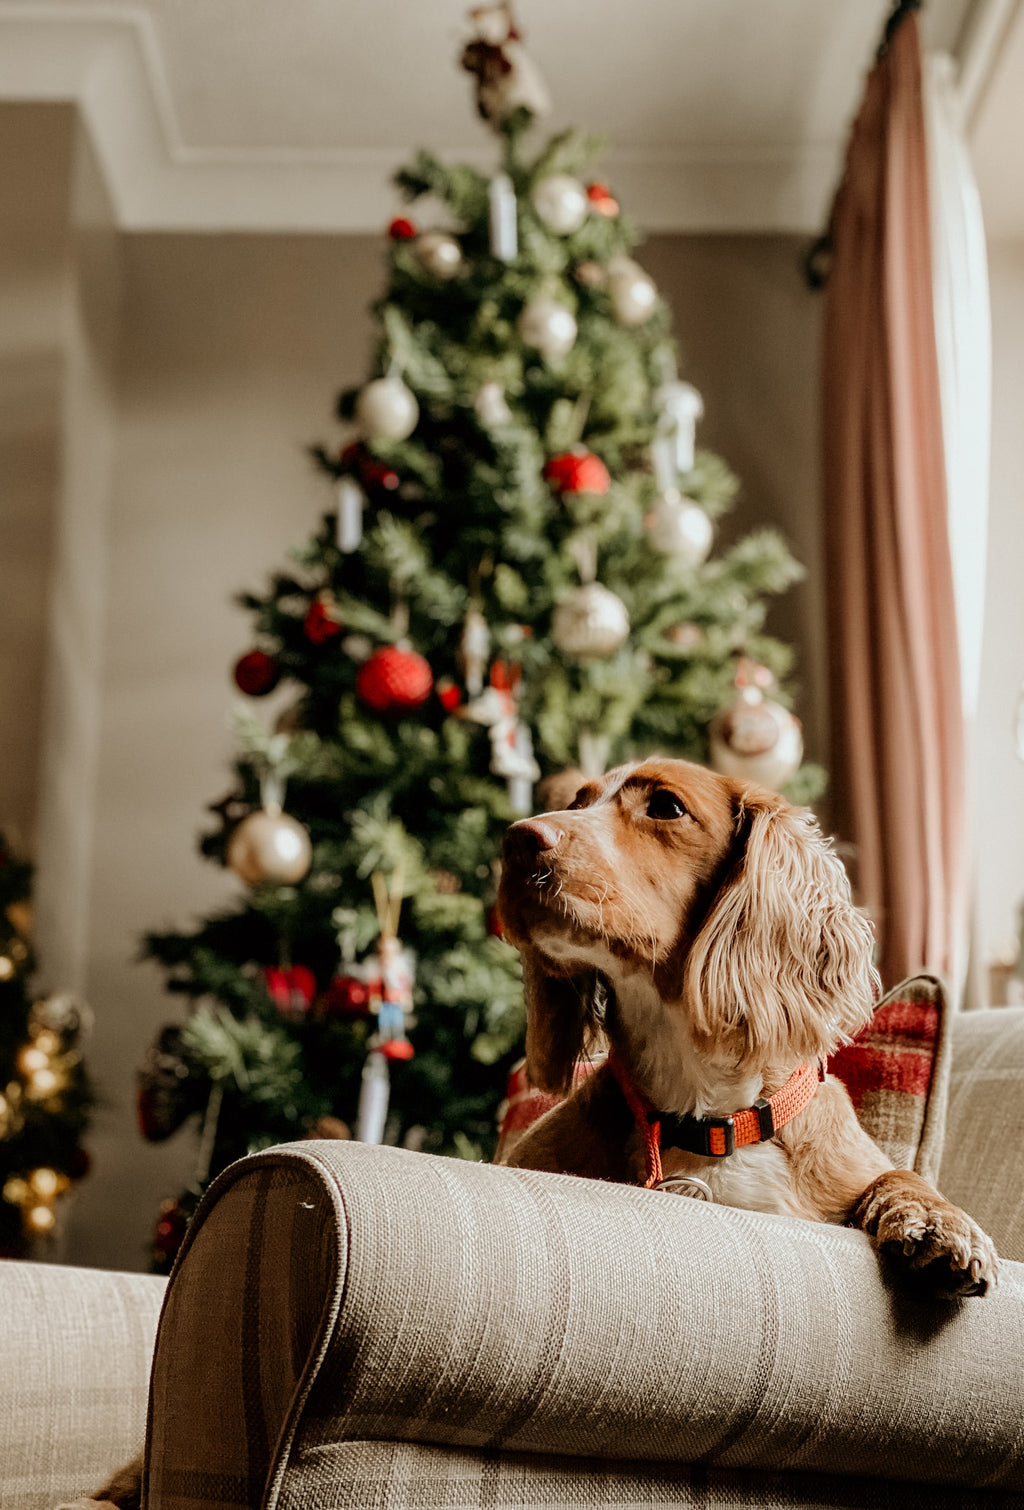 10 Top Christmas Movies for Pet Lovers